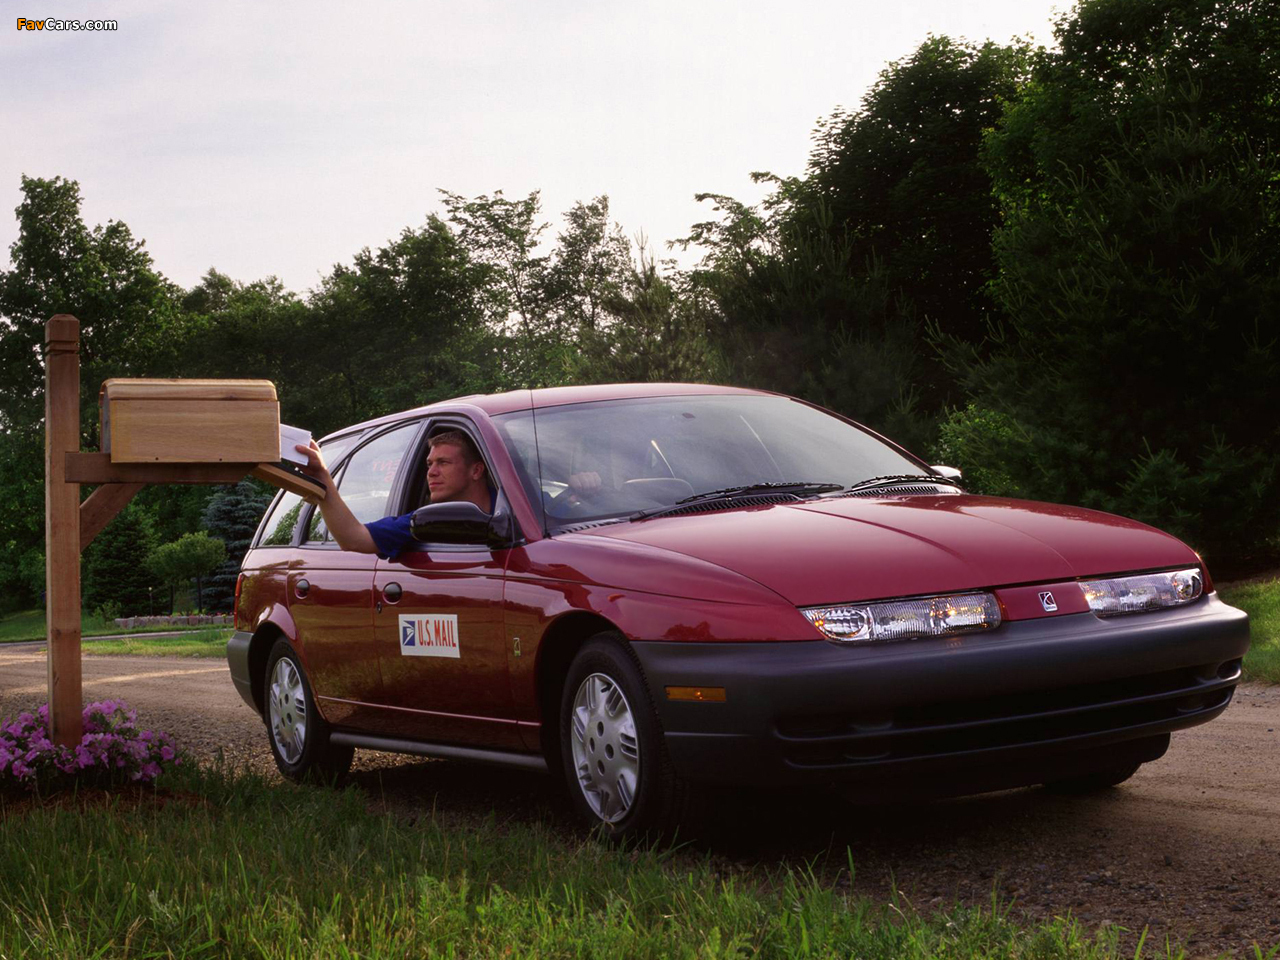 Saturn Swp Postal Station Wagon 1999 Wallpapers 1280x960